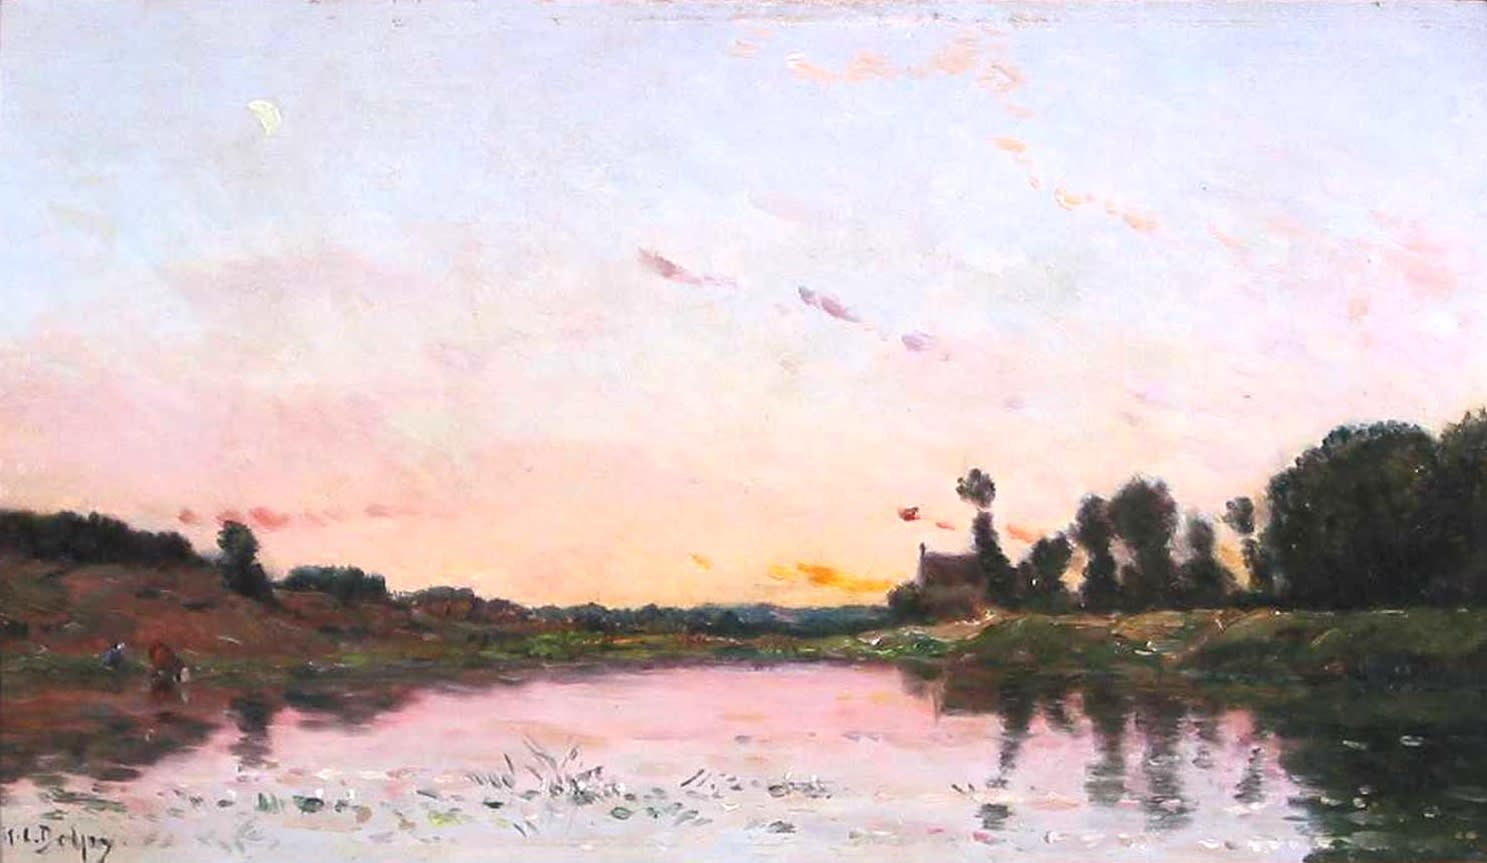 Les Bords de l'Etang